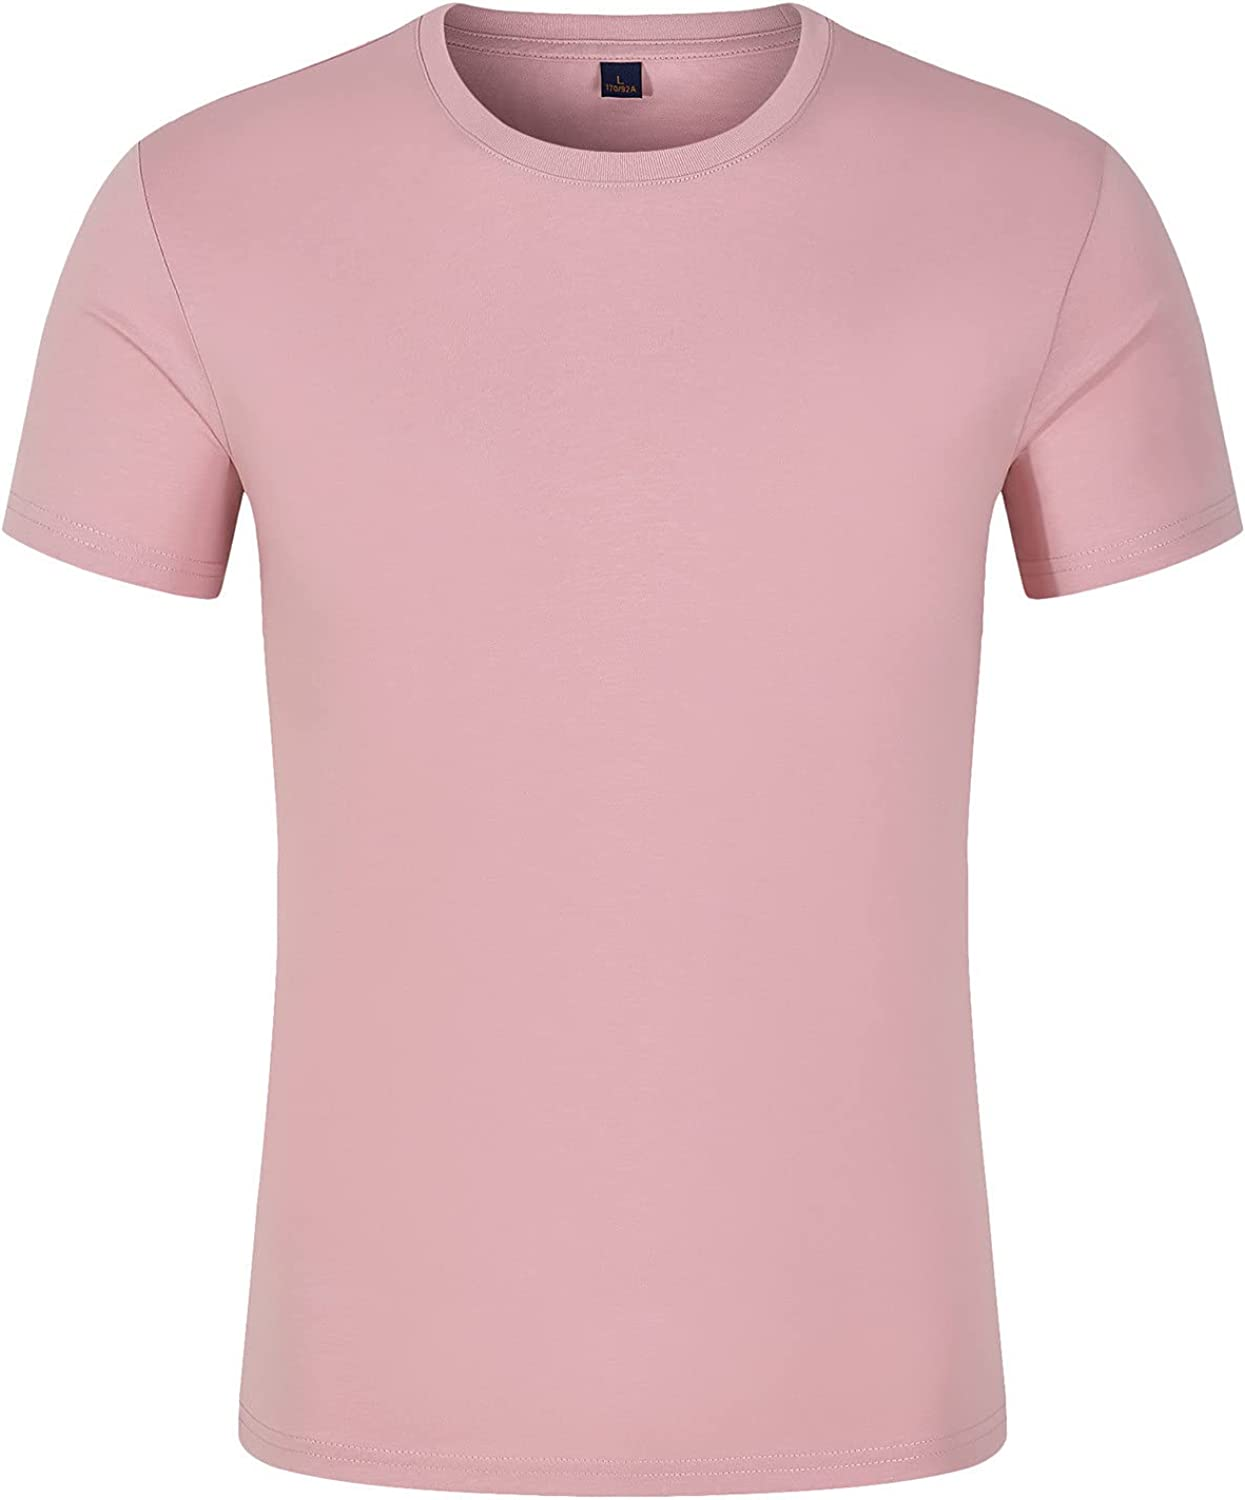 Casual Short Sleeve Cotton Tee Top for Men Dry-Fit Moisture Wicking Active Athletic Performance Crew T-Shirt